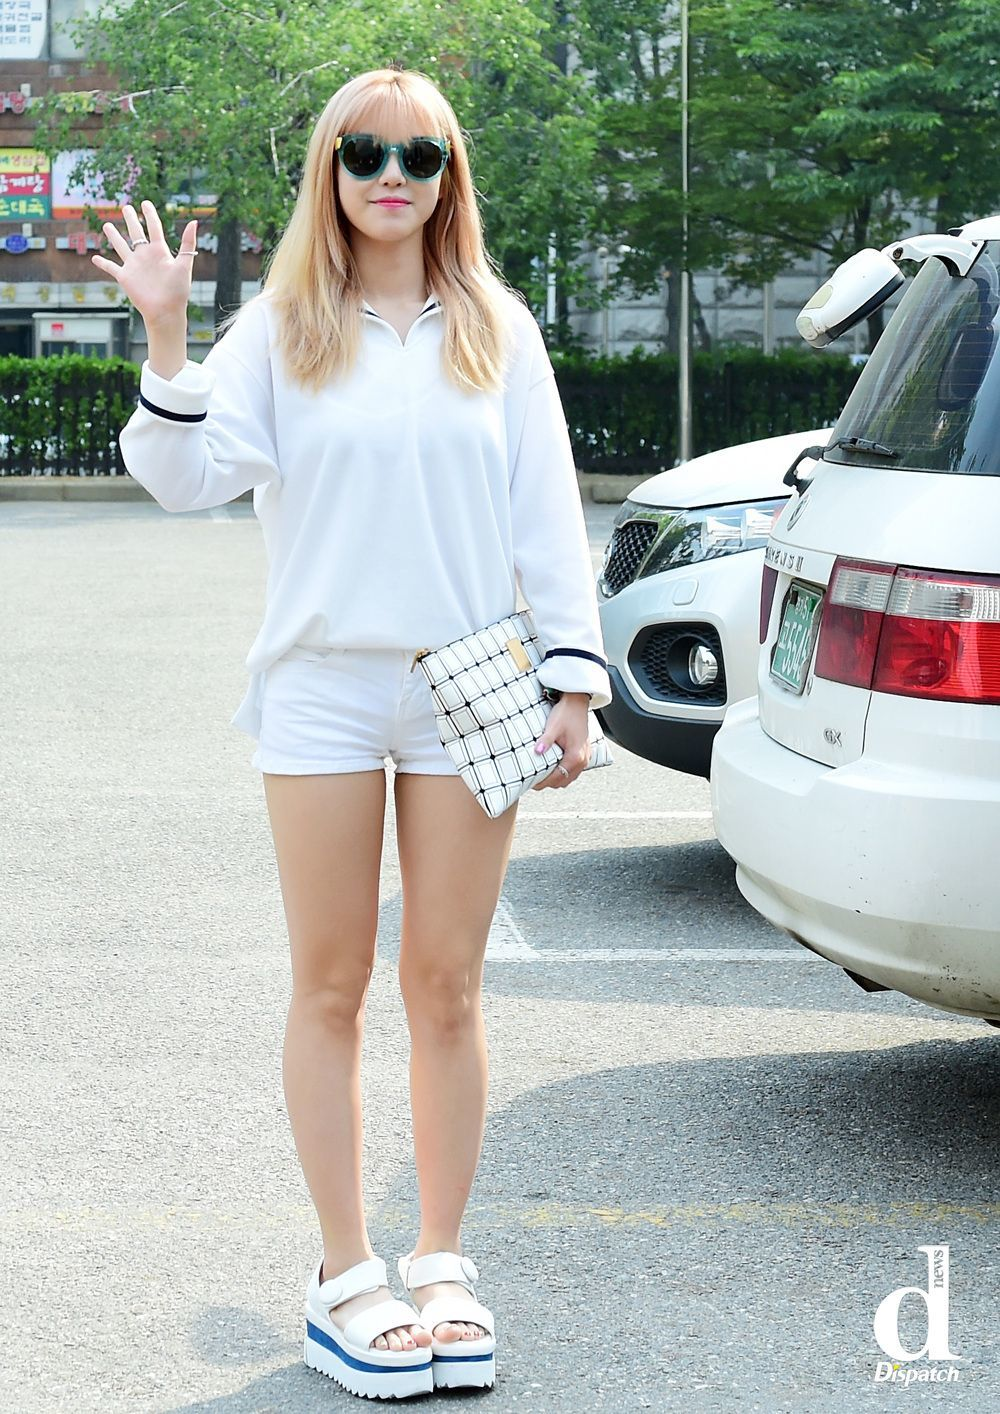 209749cc641c Dispatch compiles photos of female idols with summer fashion